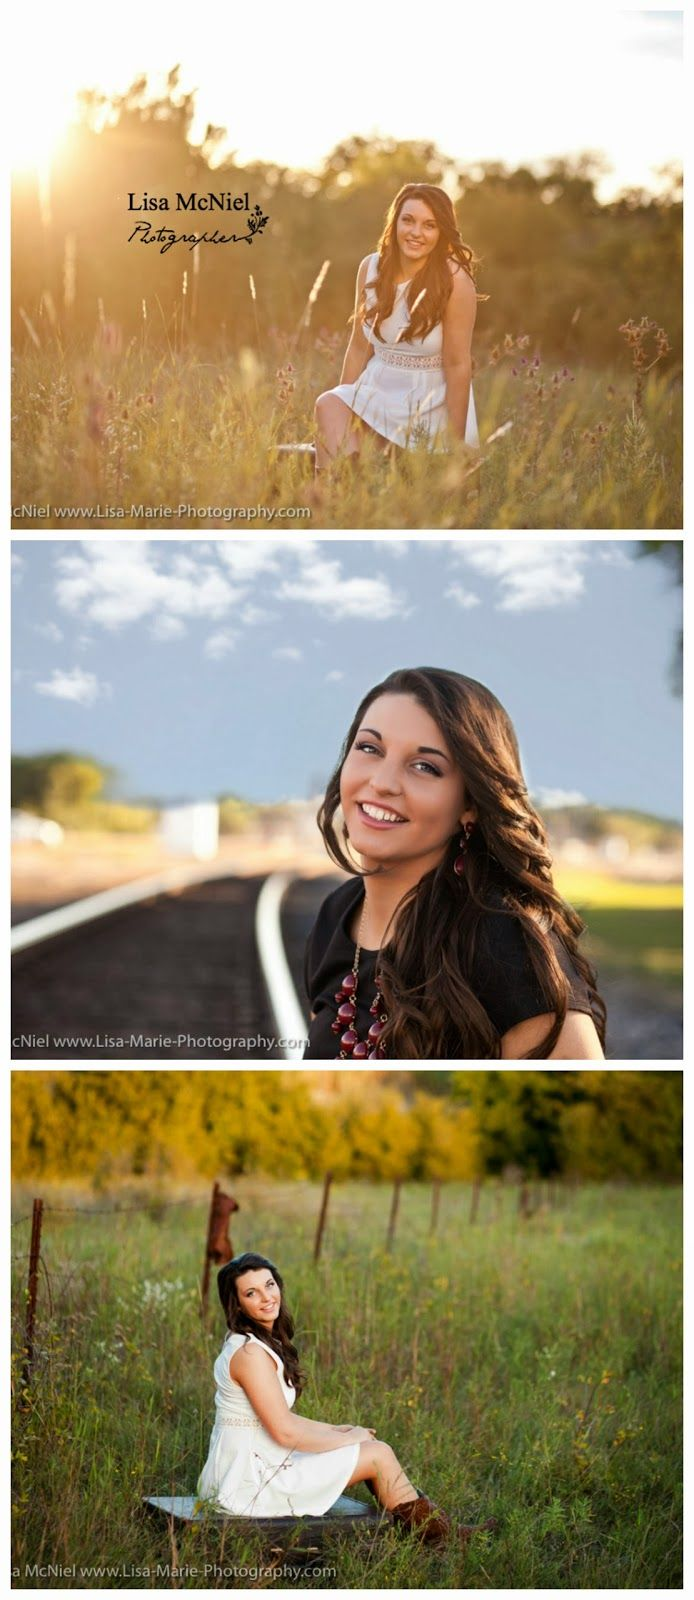 17 Best images about Model pics on Pinterest | Senior pics ...